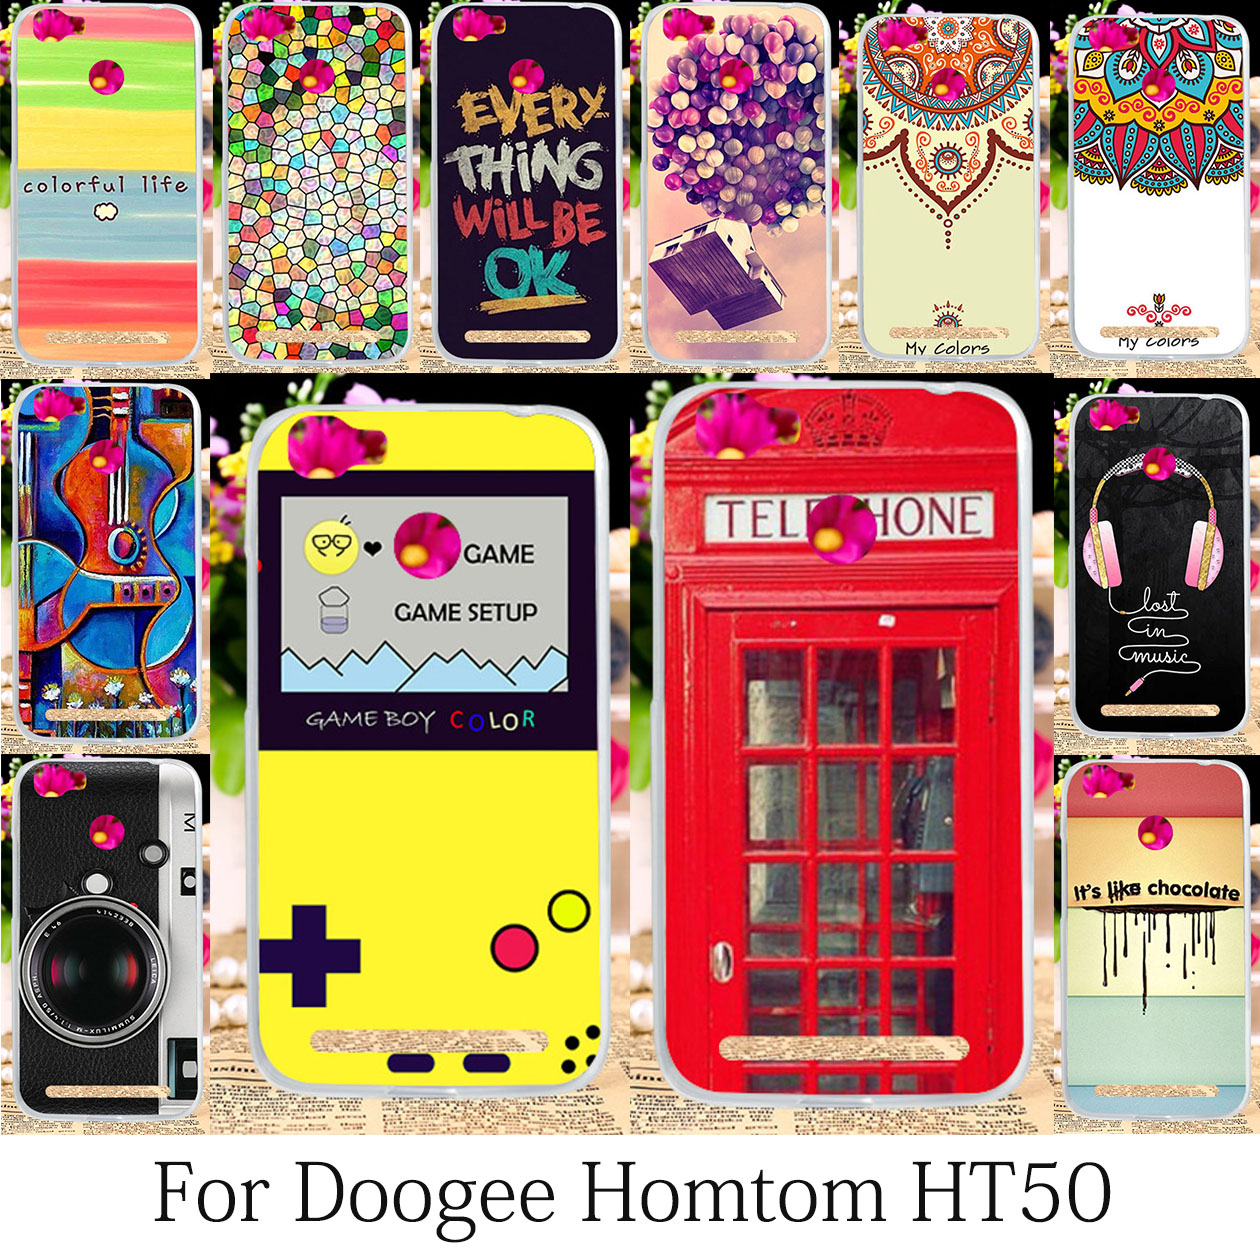 TAOYUNXI Phone Cases Homtom HT50 Case Cover Silicon Soft Phone Bags Doogee Homtom HT50 Back Cover Smart Camera 5.5 inch